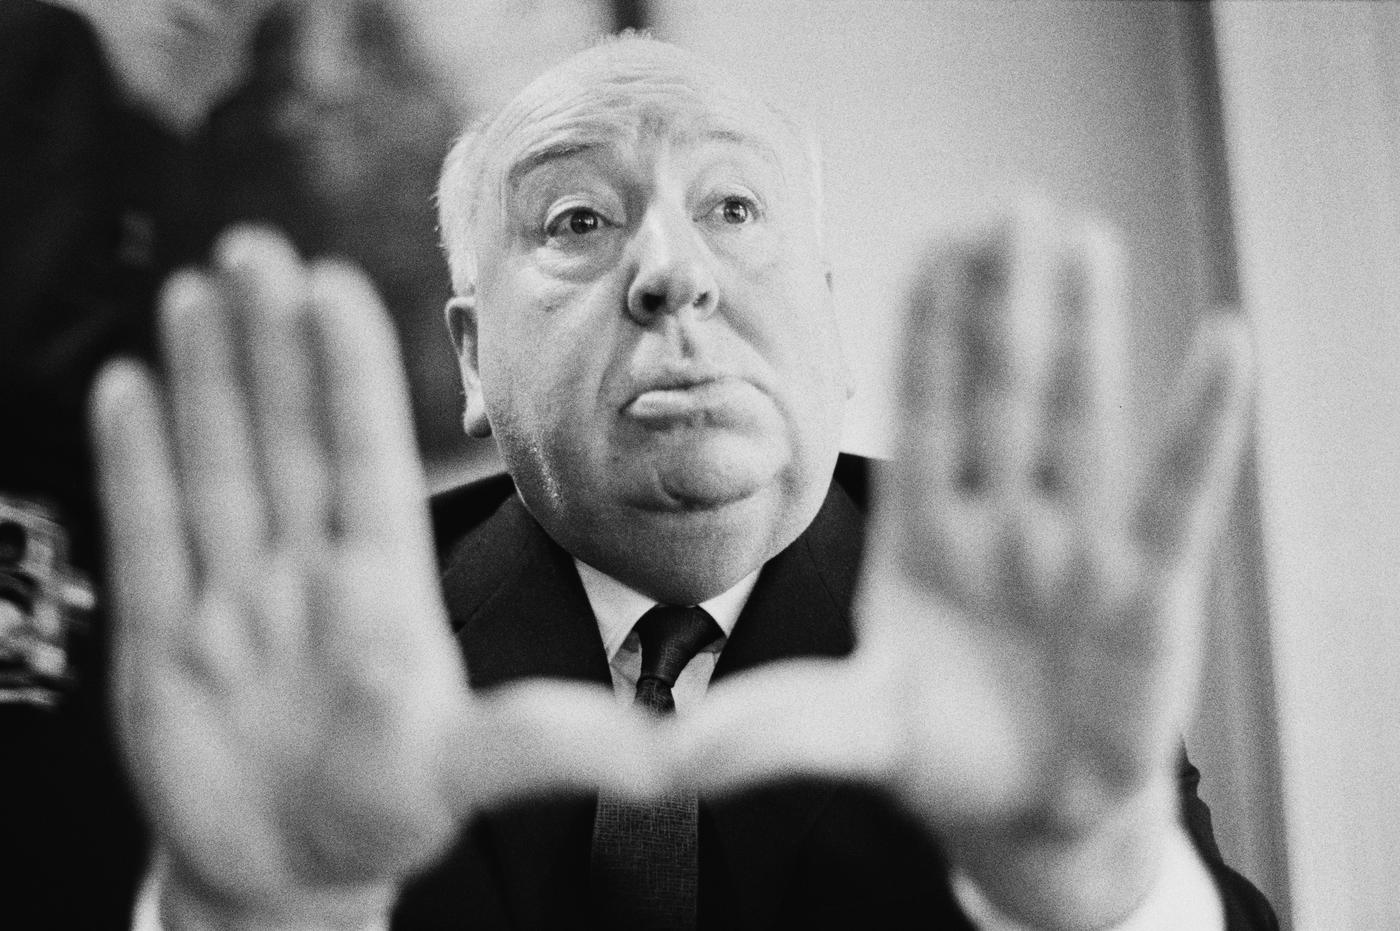 1400x931 - Alfred Hitchcock Wallpapers 33